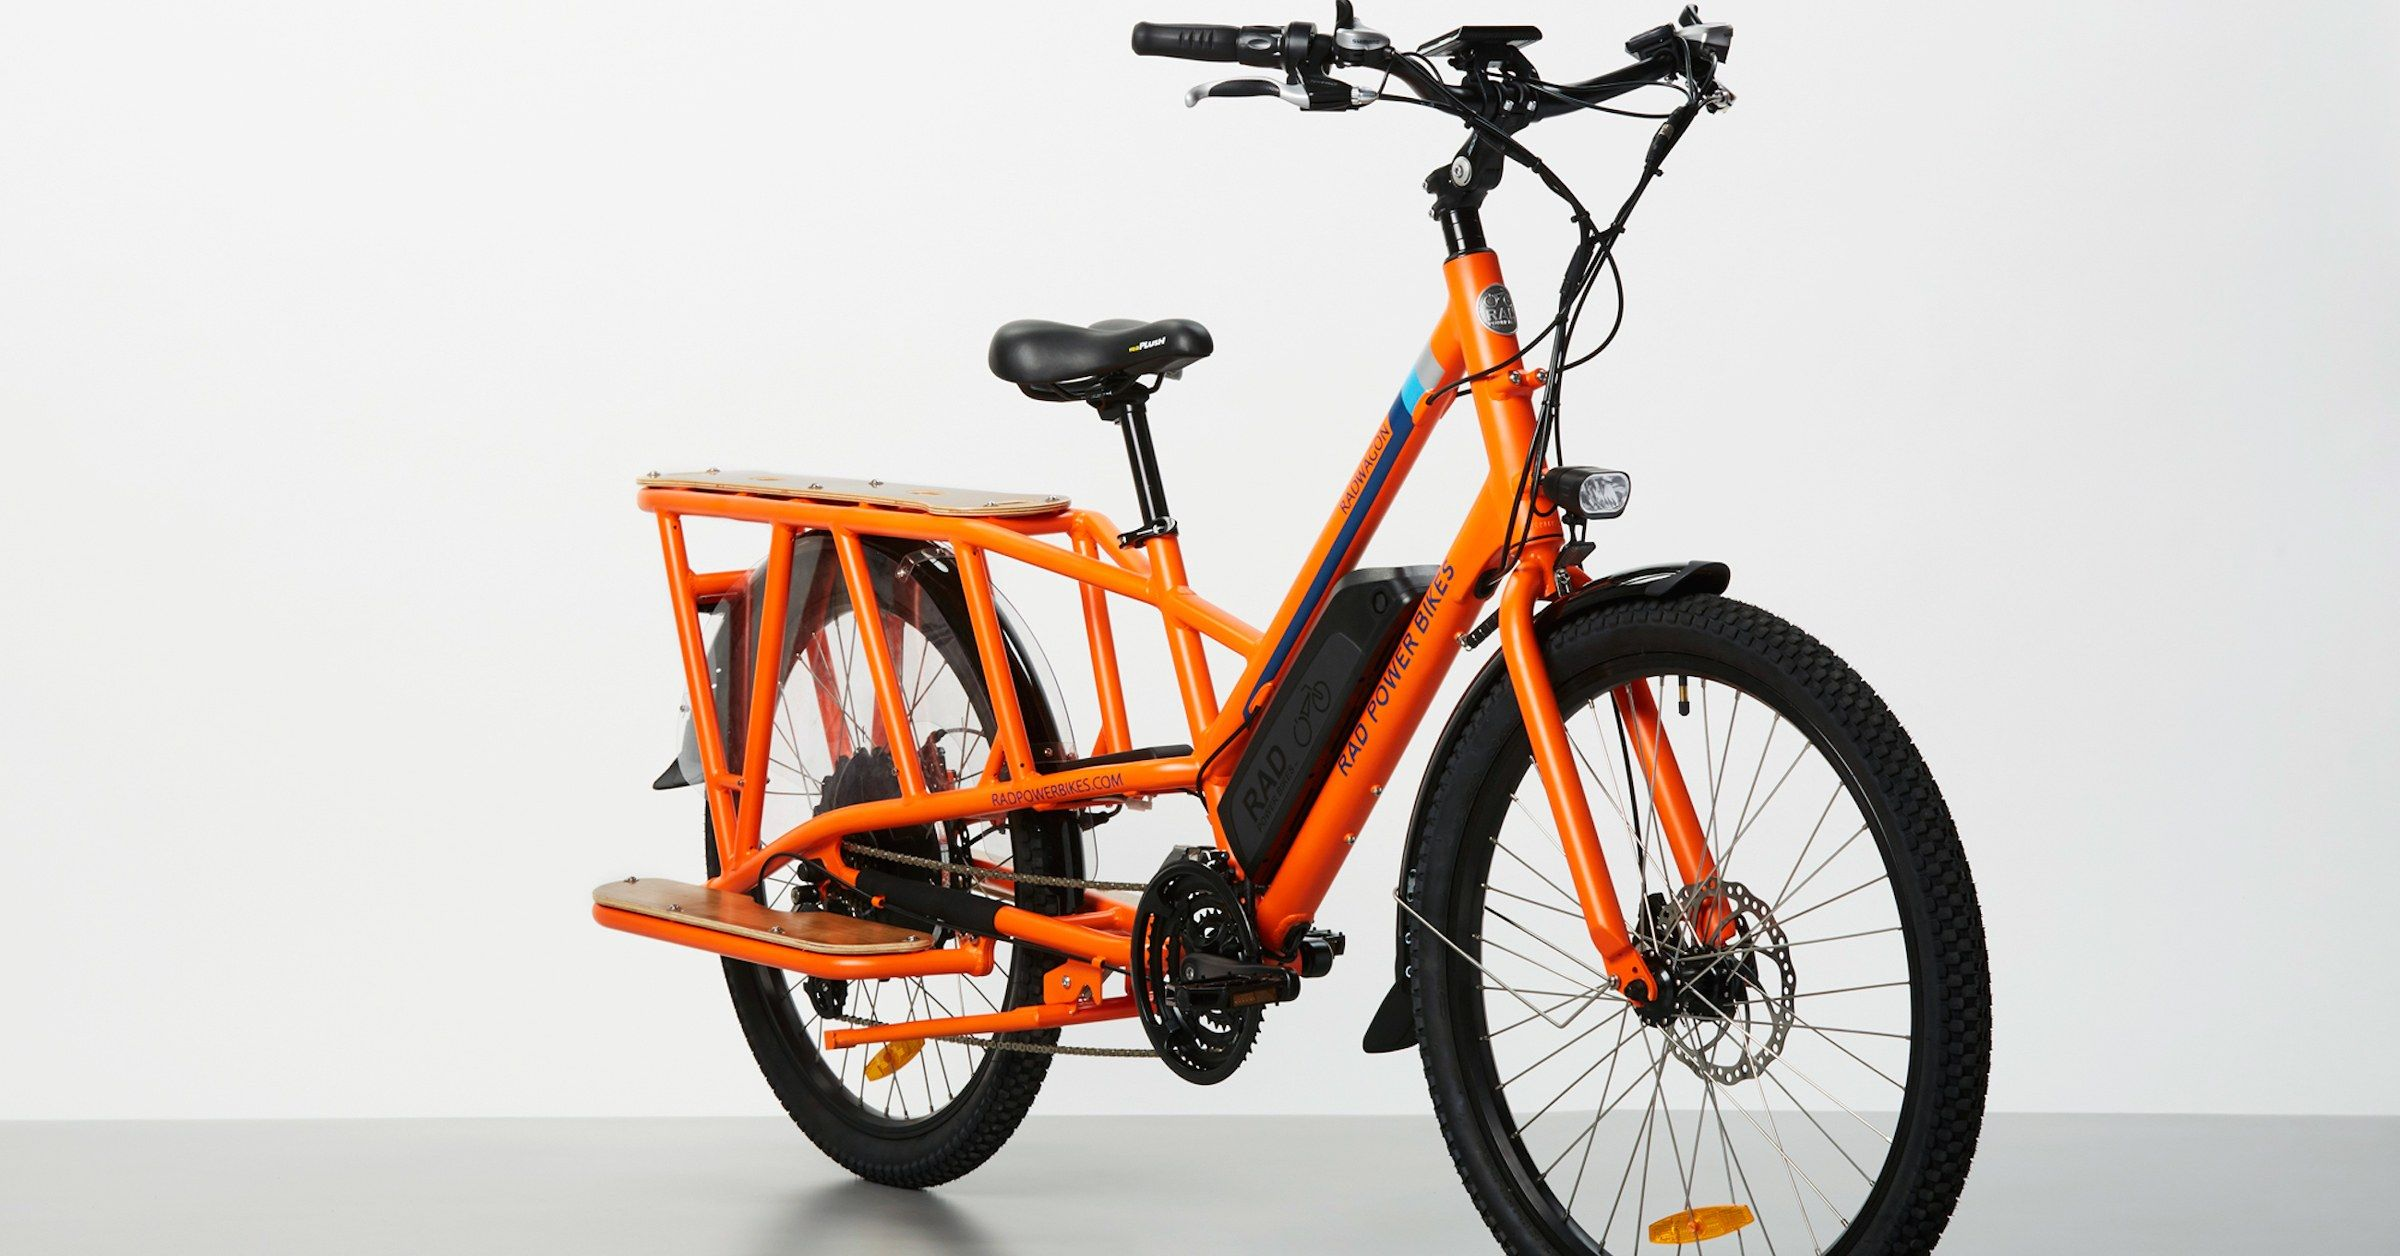 The Best Electric Cargo Bikes For A Family Cargo Bike Electric